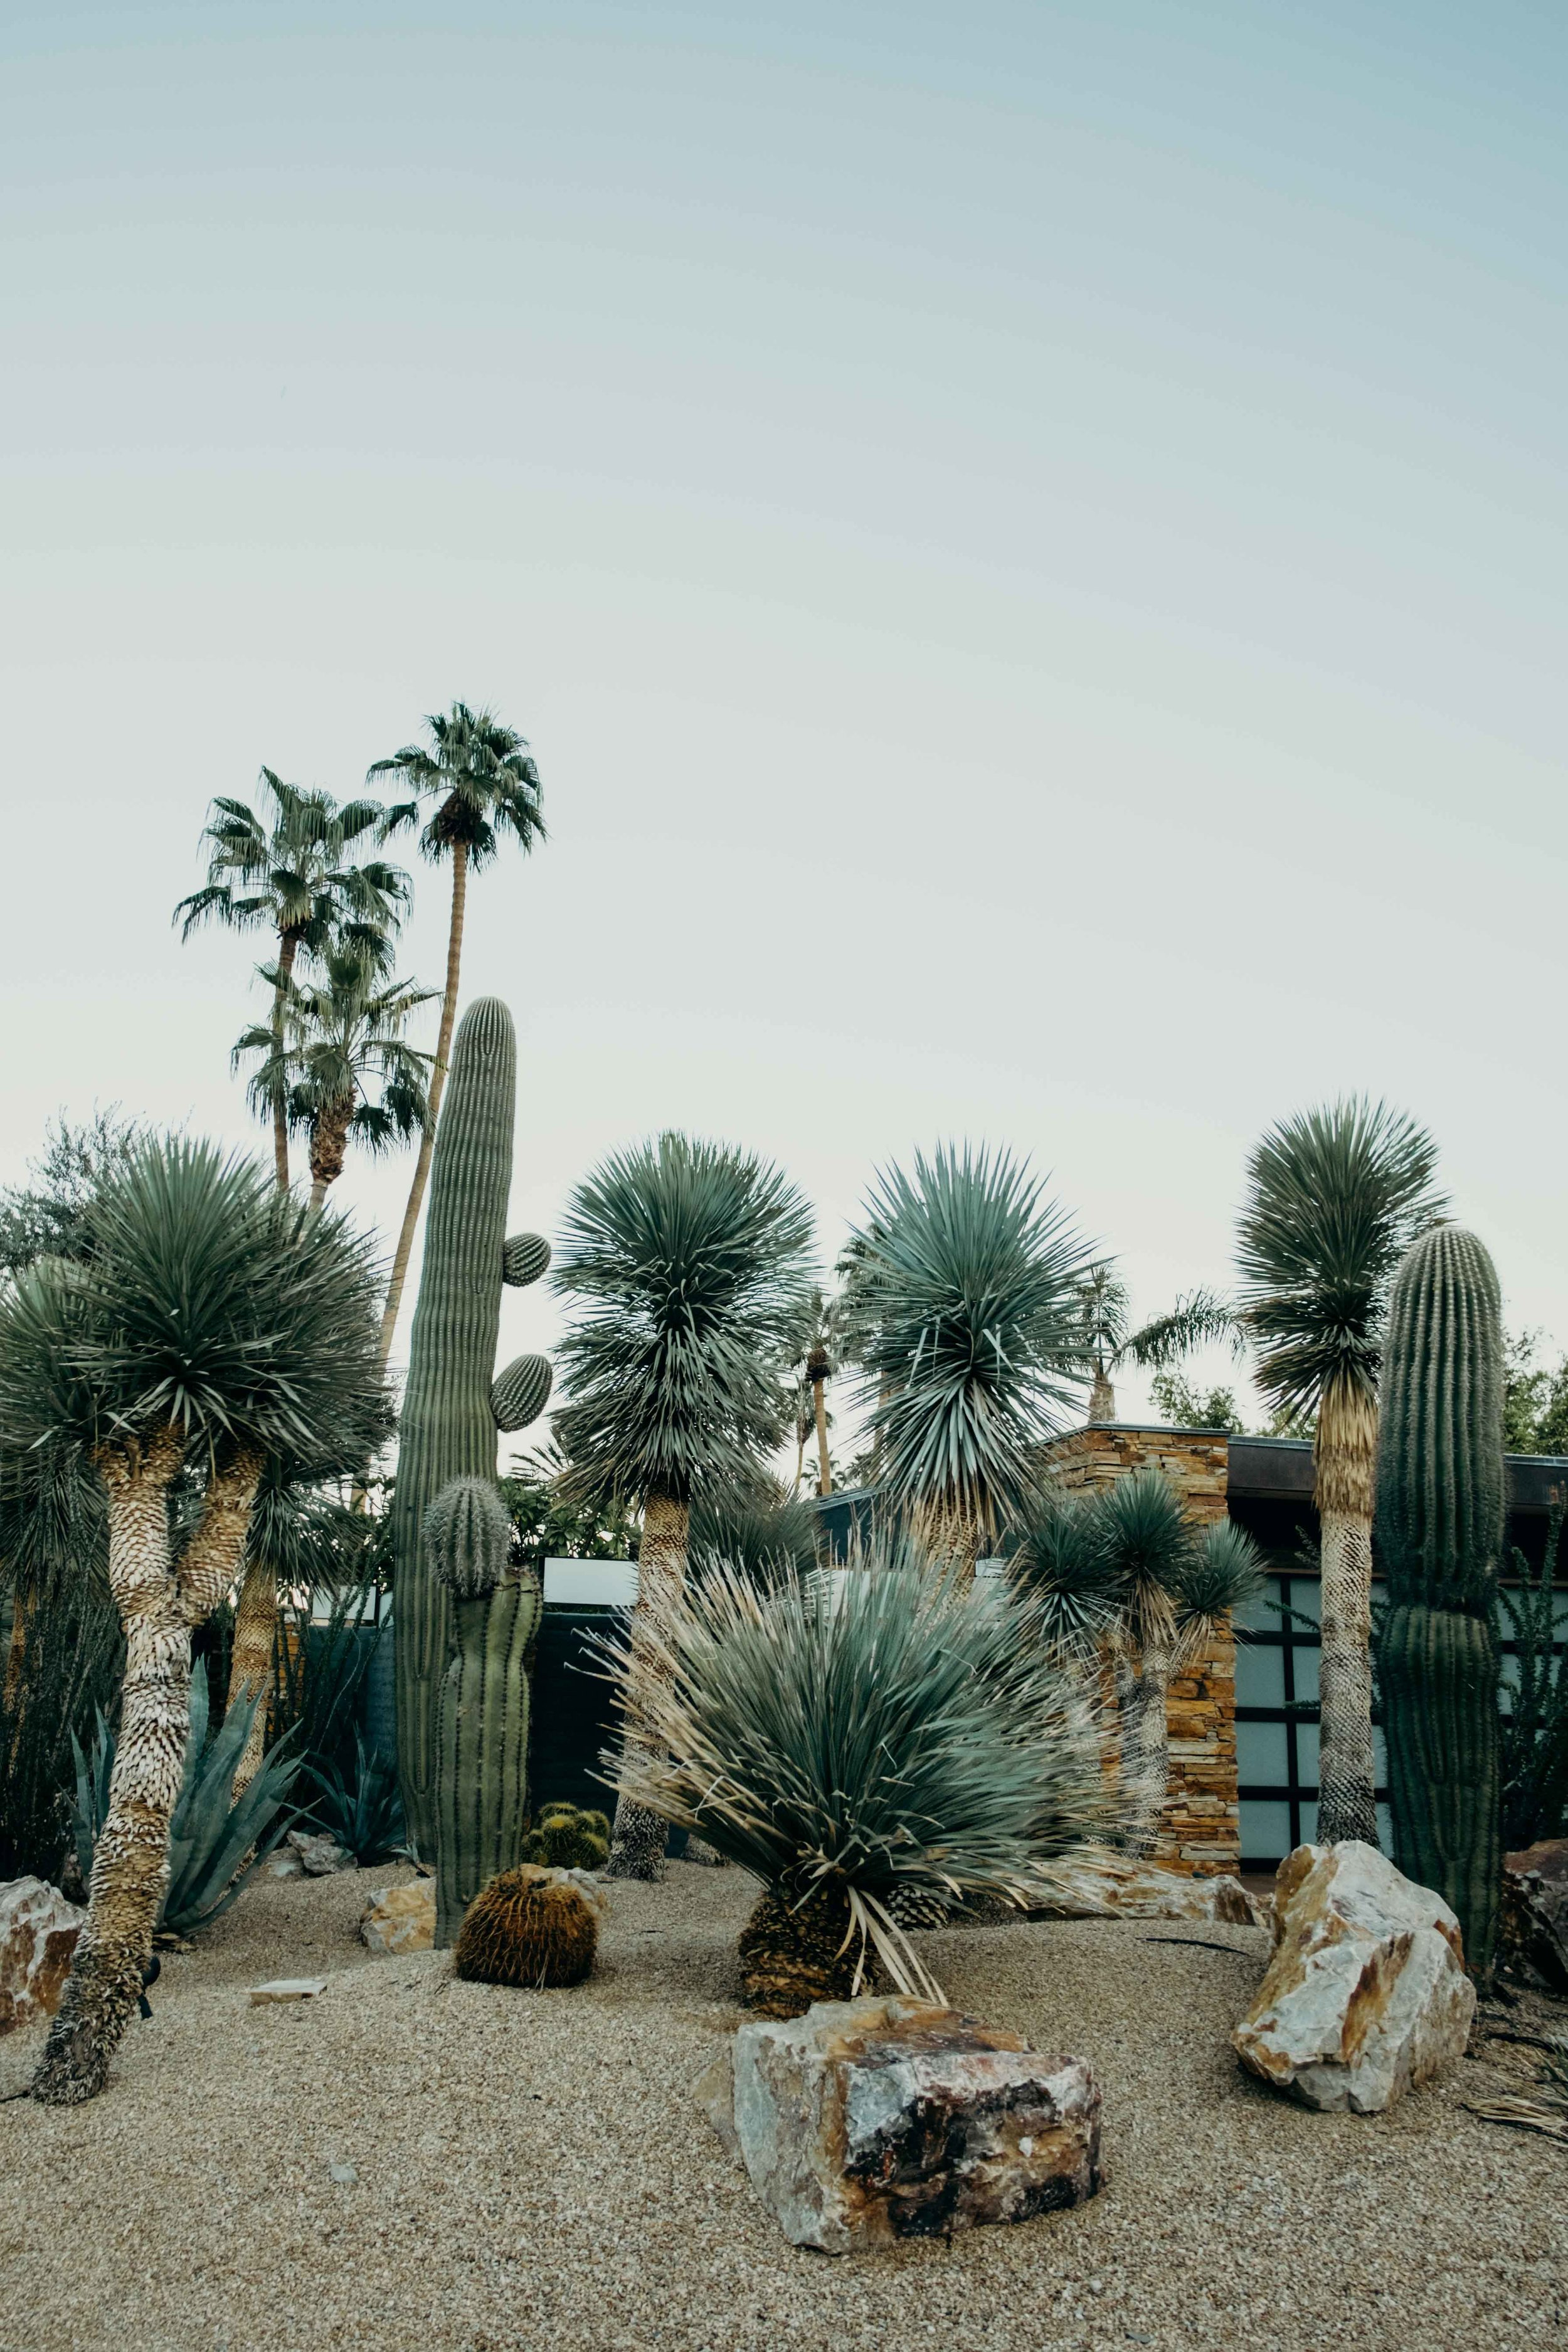 20171005_Palm Springs Travel Guide_46.jpg